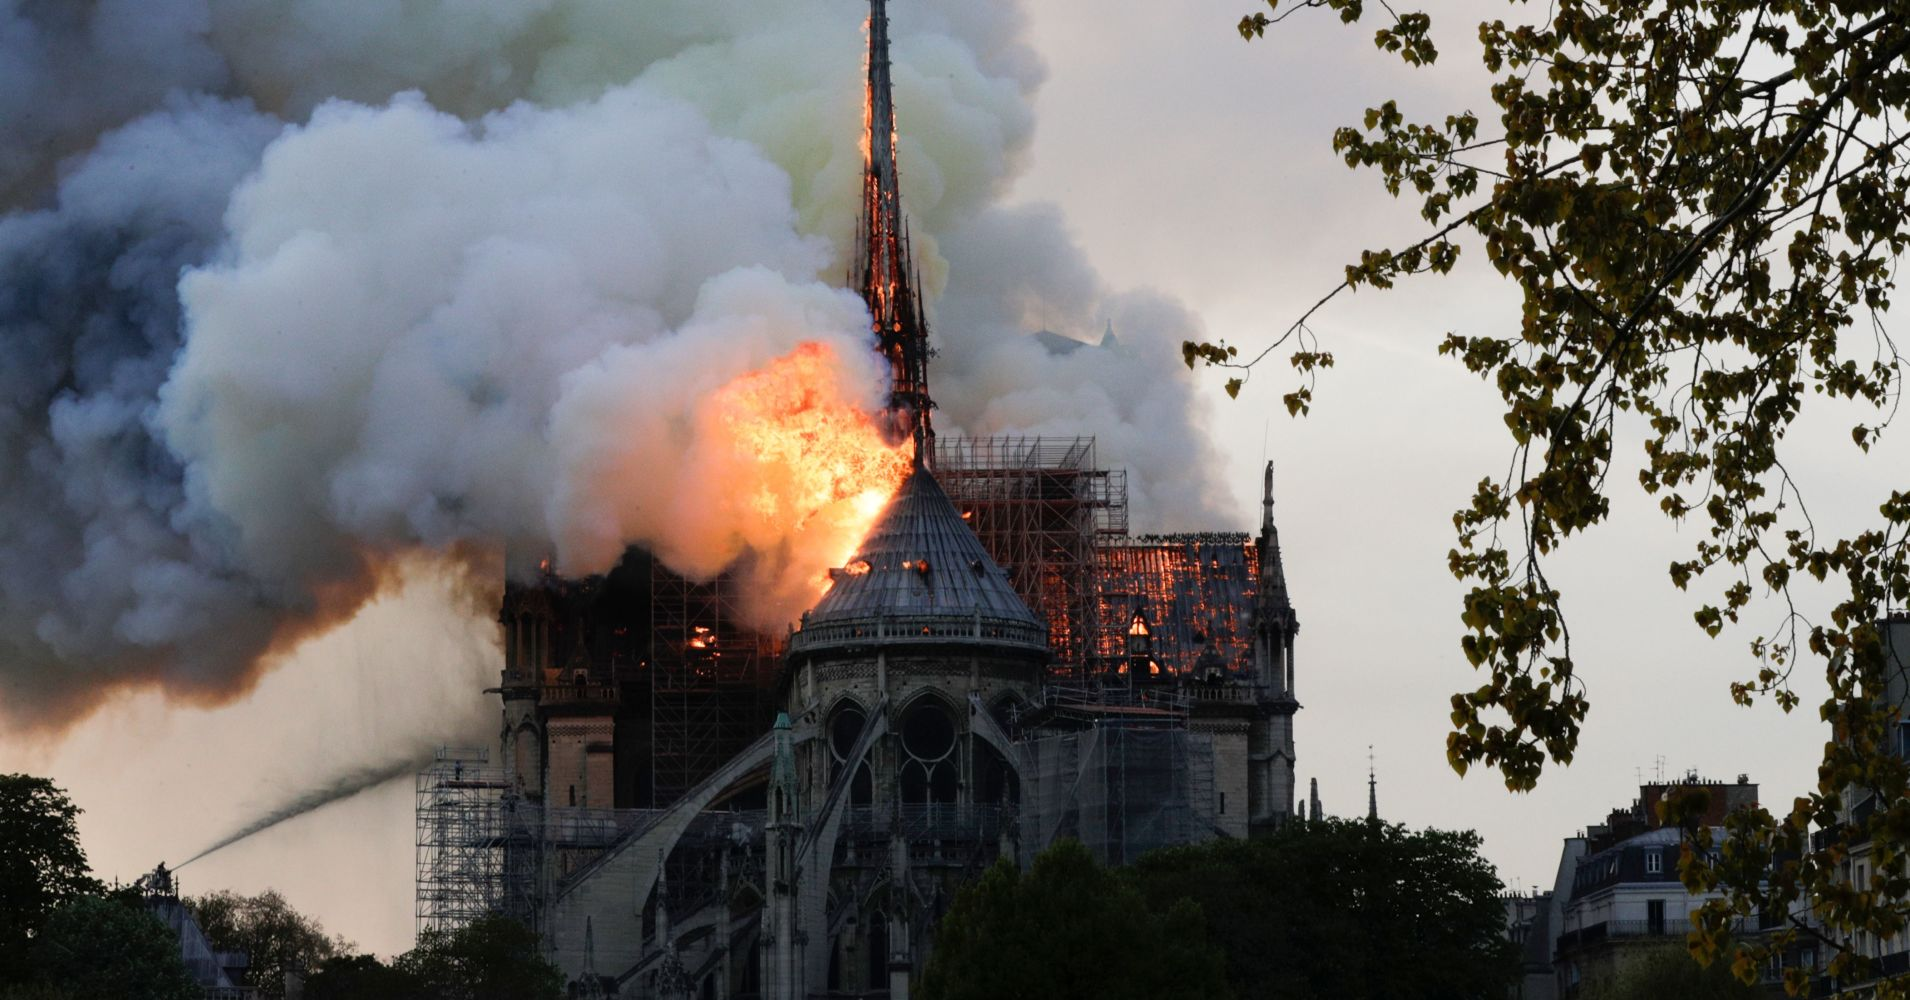 Notre-Dame in flames. Image: CNBC